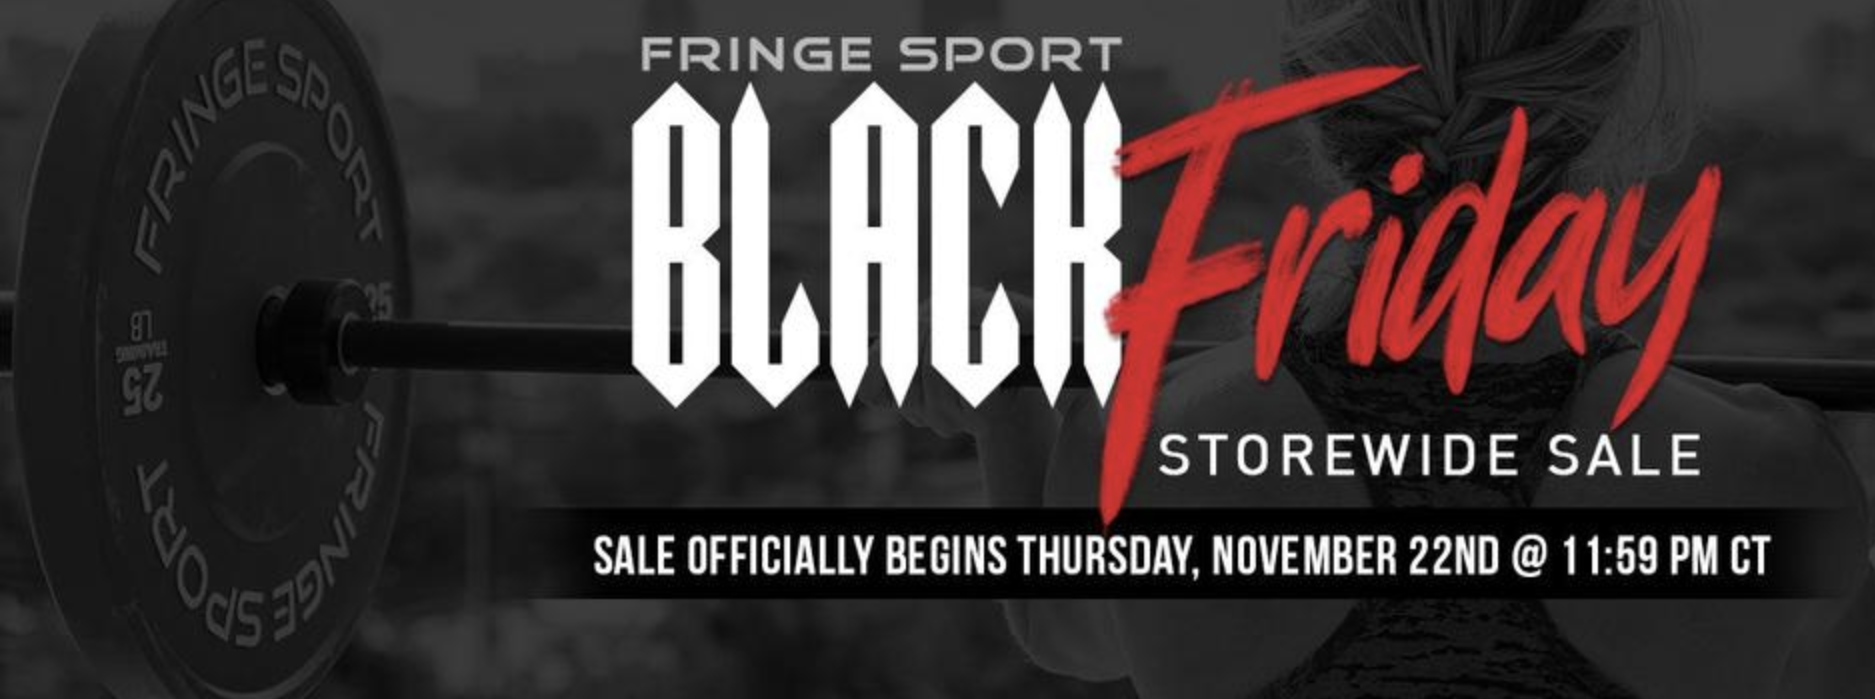 fringe-sport-black-friday